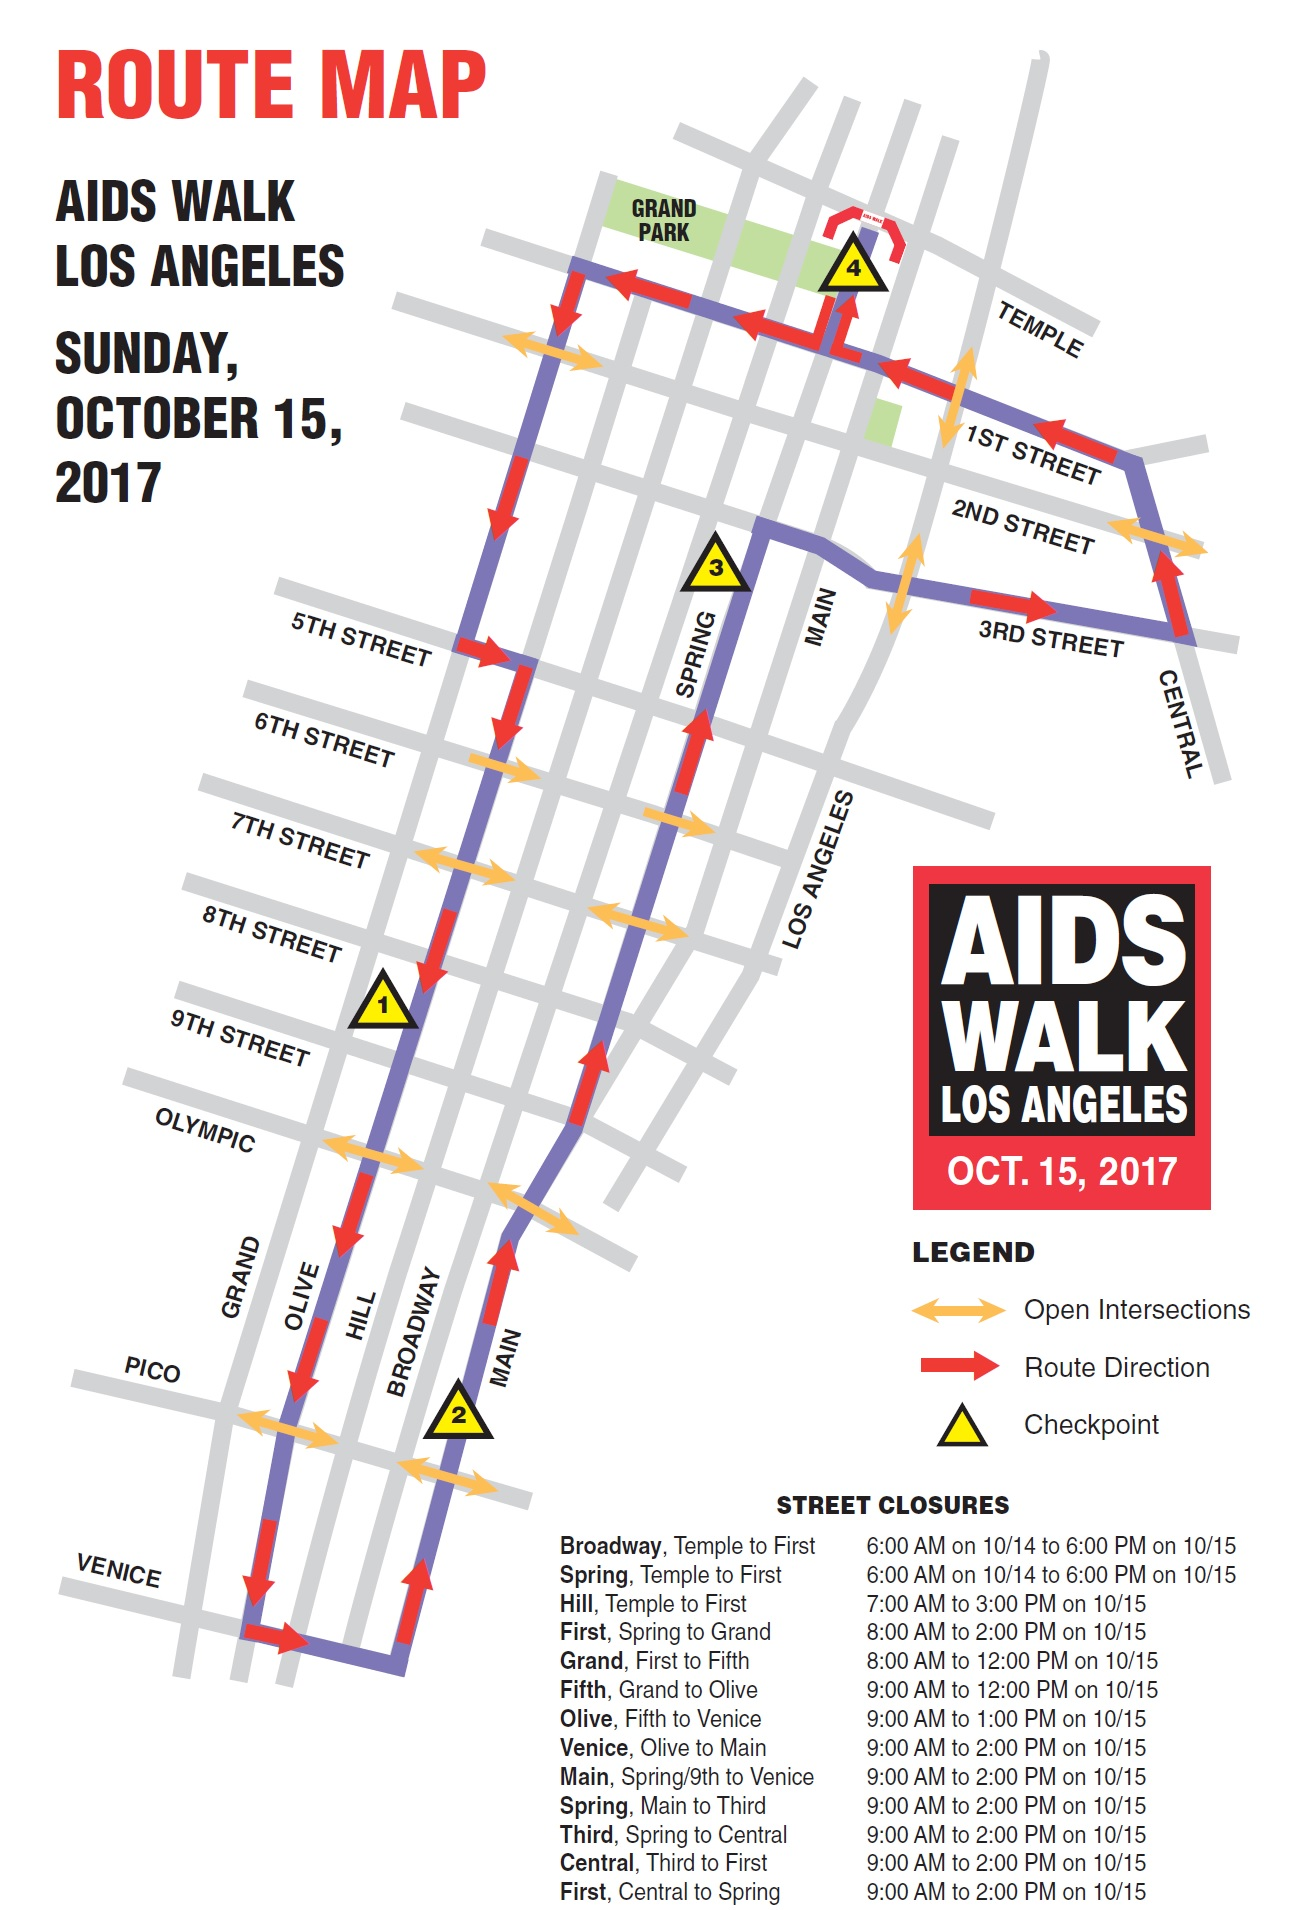 AIDS Walk Los Angeles 2017 Route Map